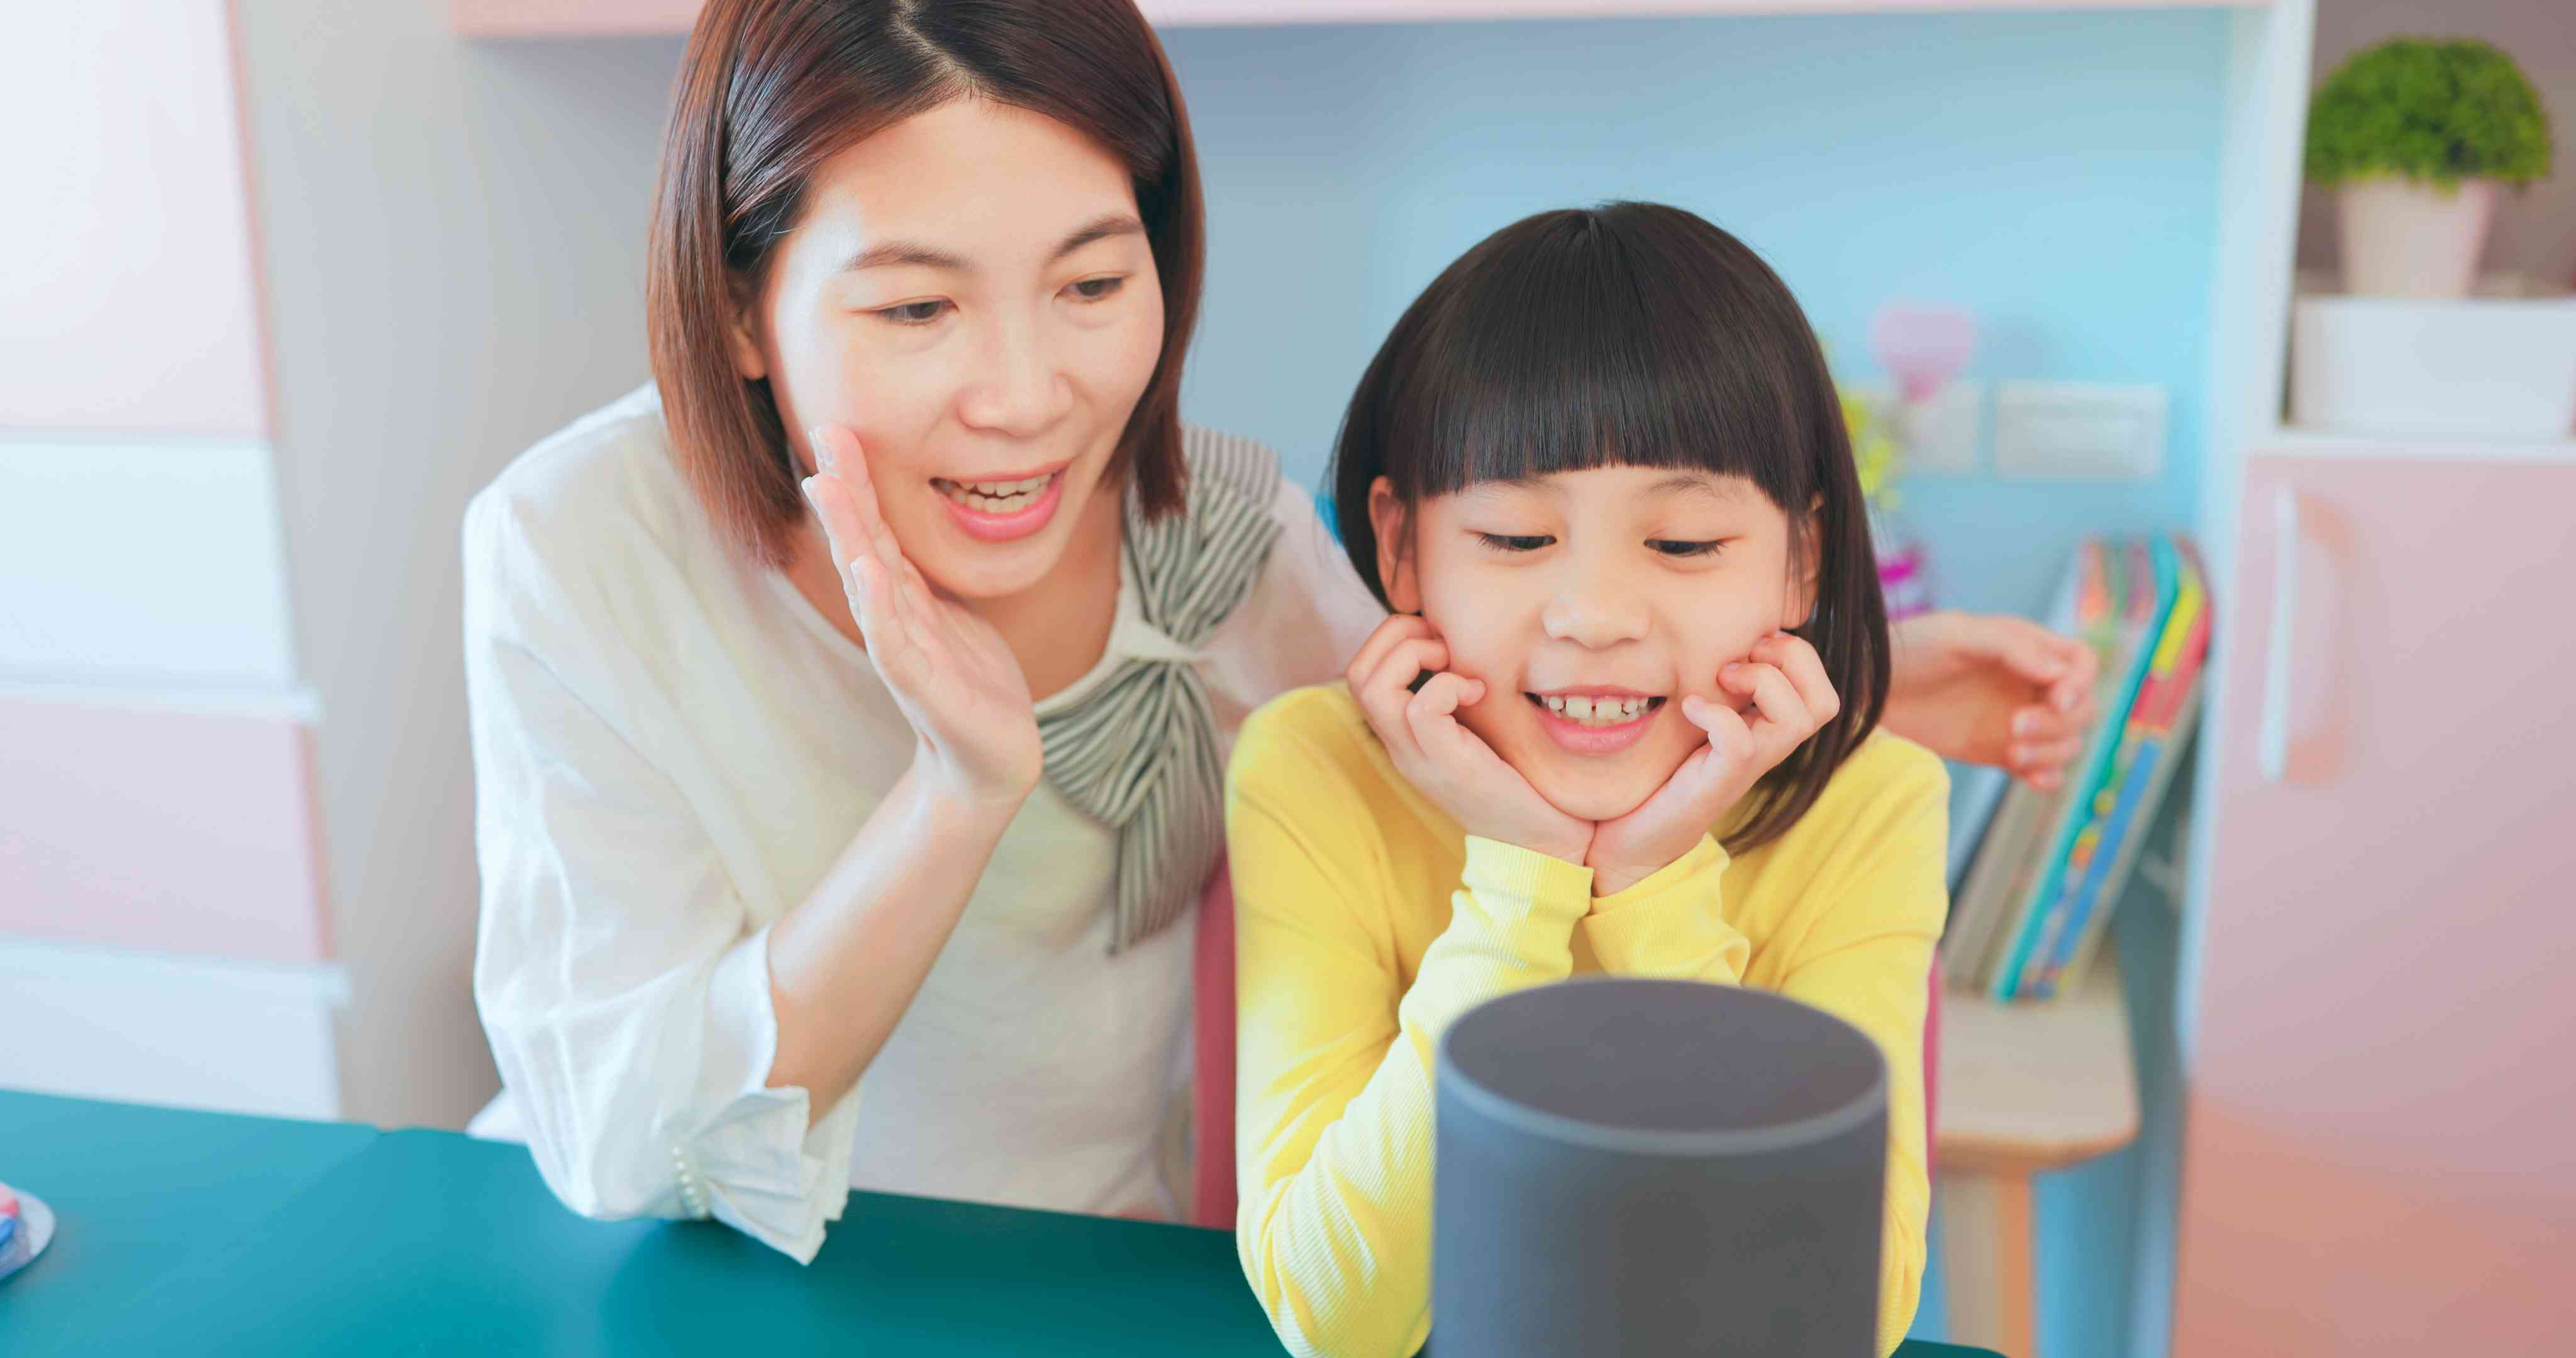 Woman and child talking to smart home device